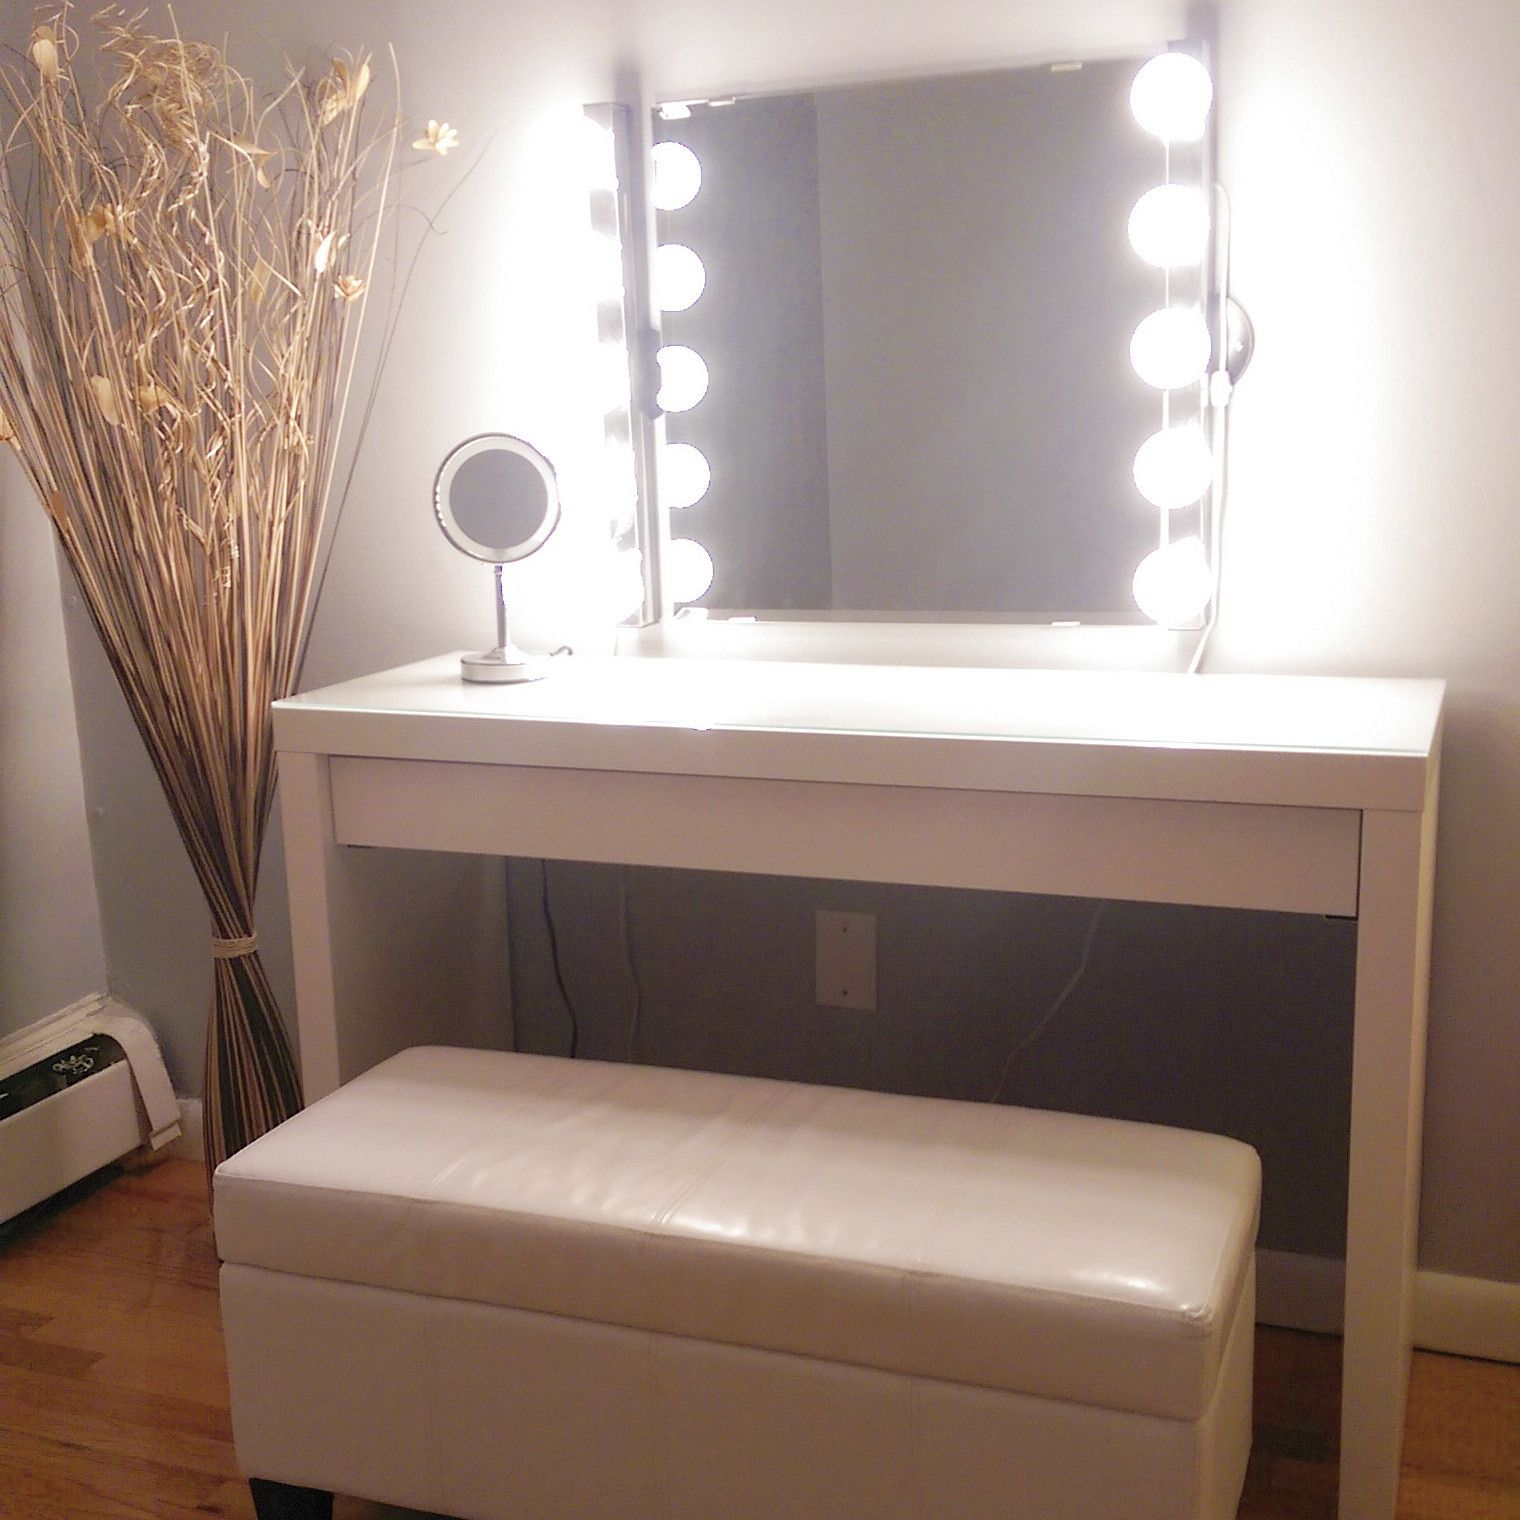 love the bench, wall mirror is Kolja mirror from Ikea, lights are